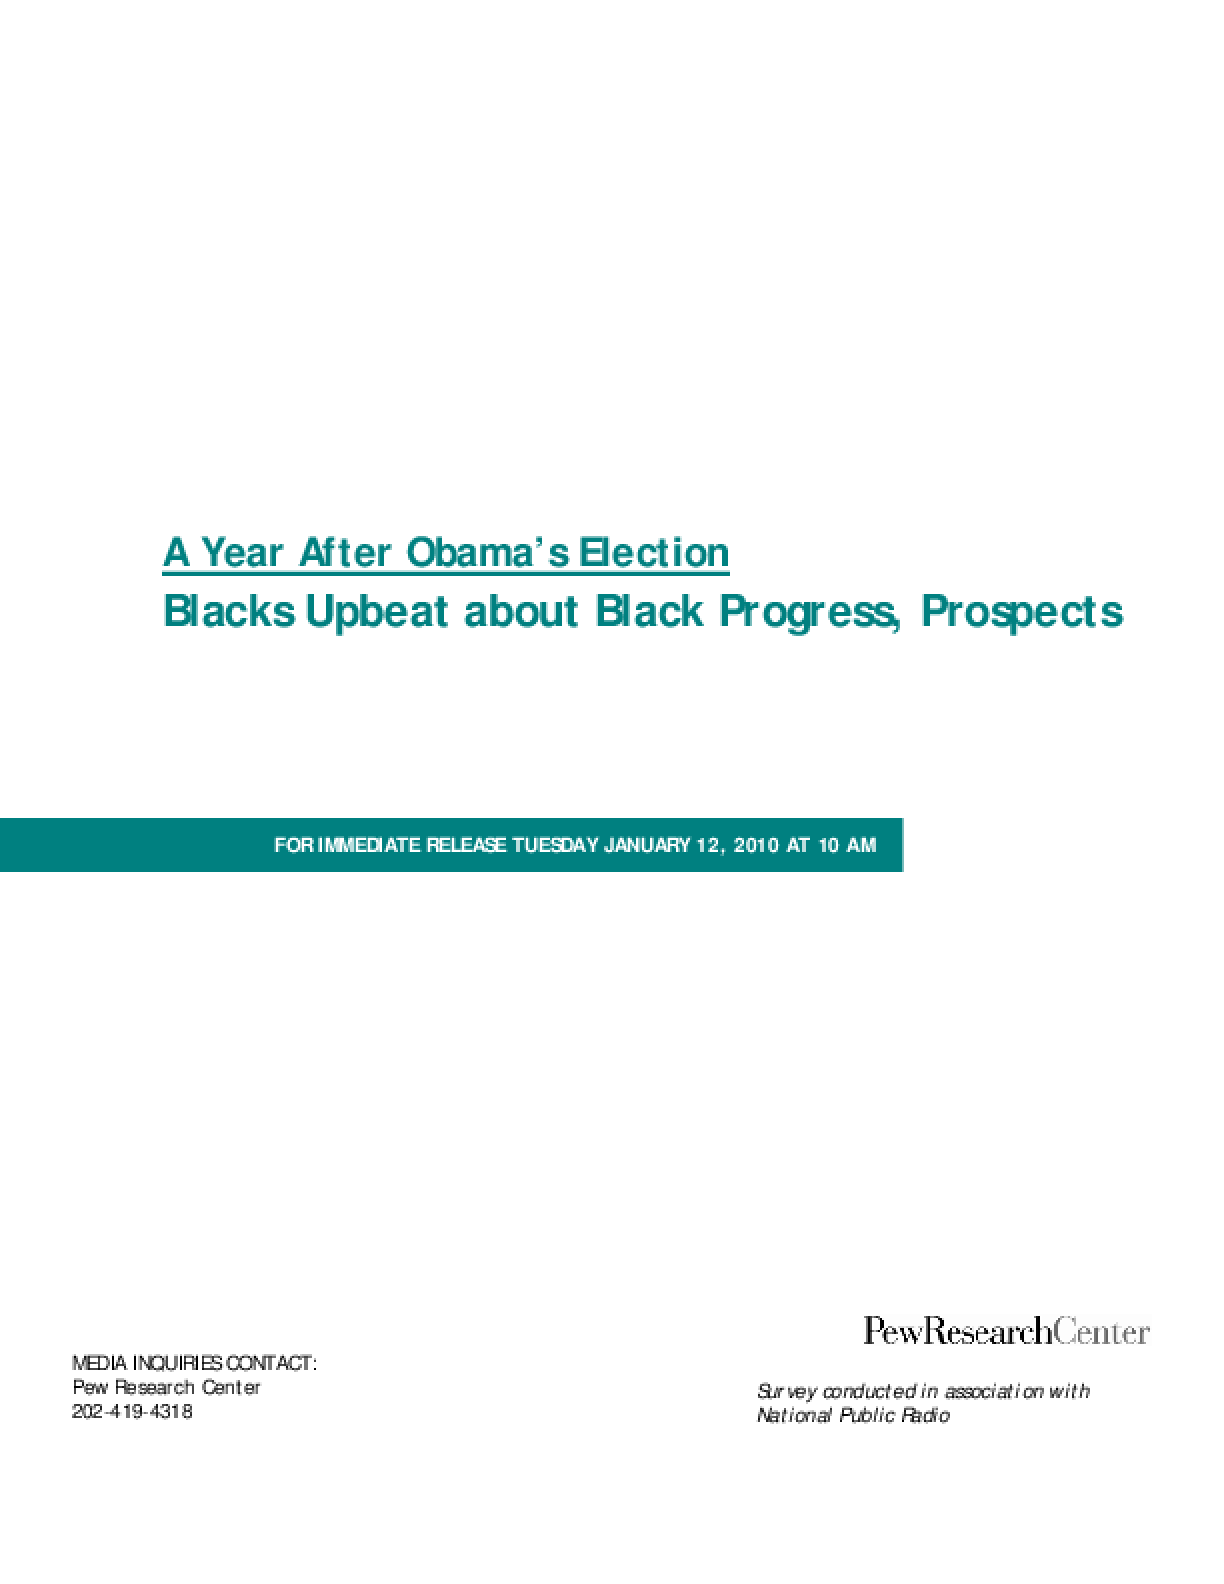 Blacks Upbeat About Black Progress, Prospects